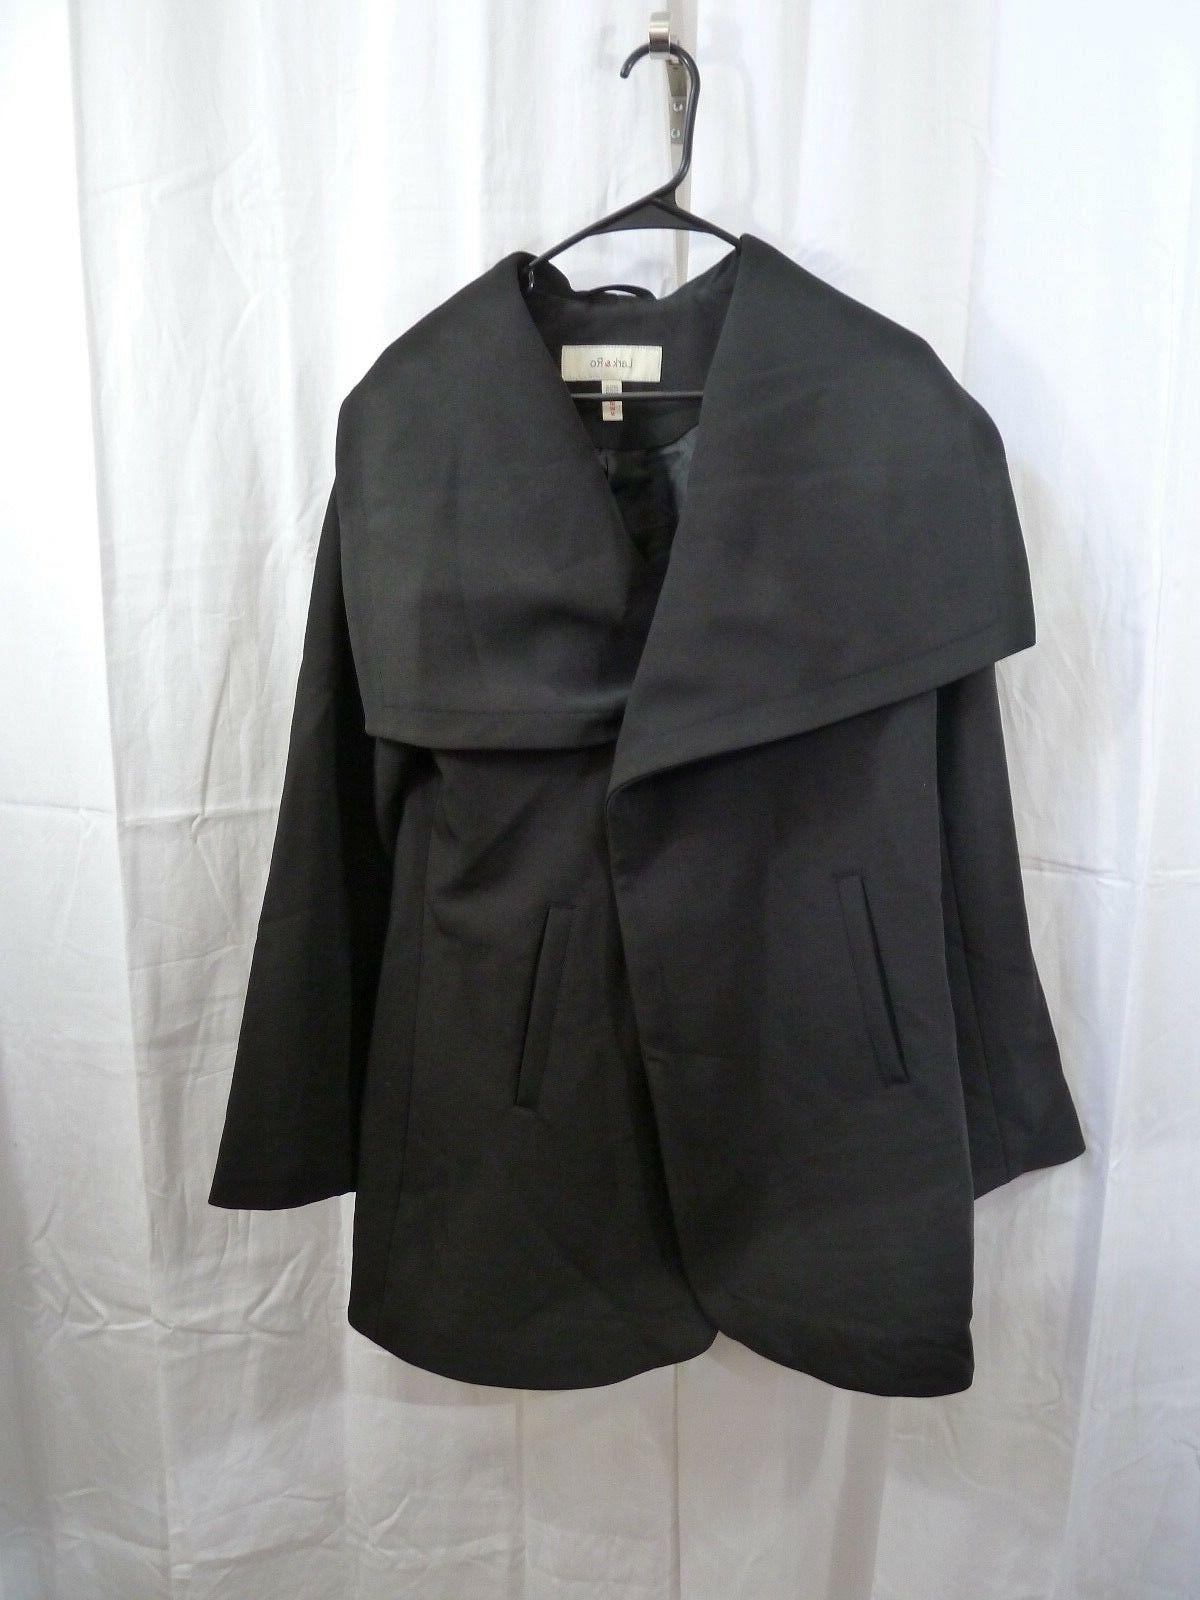 Lark & Ro Women's Single Button Jacket Black Size Medium